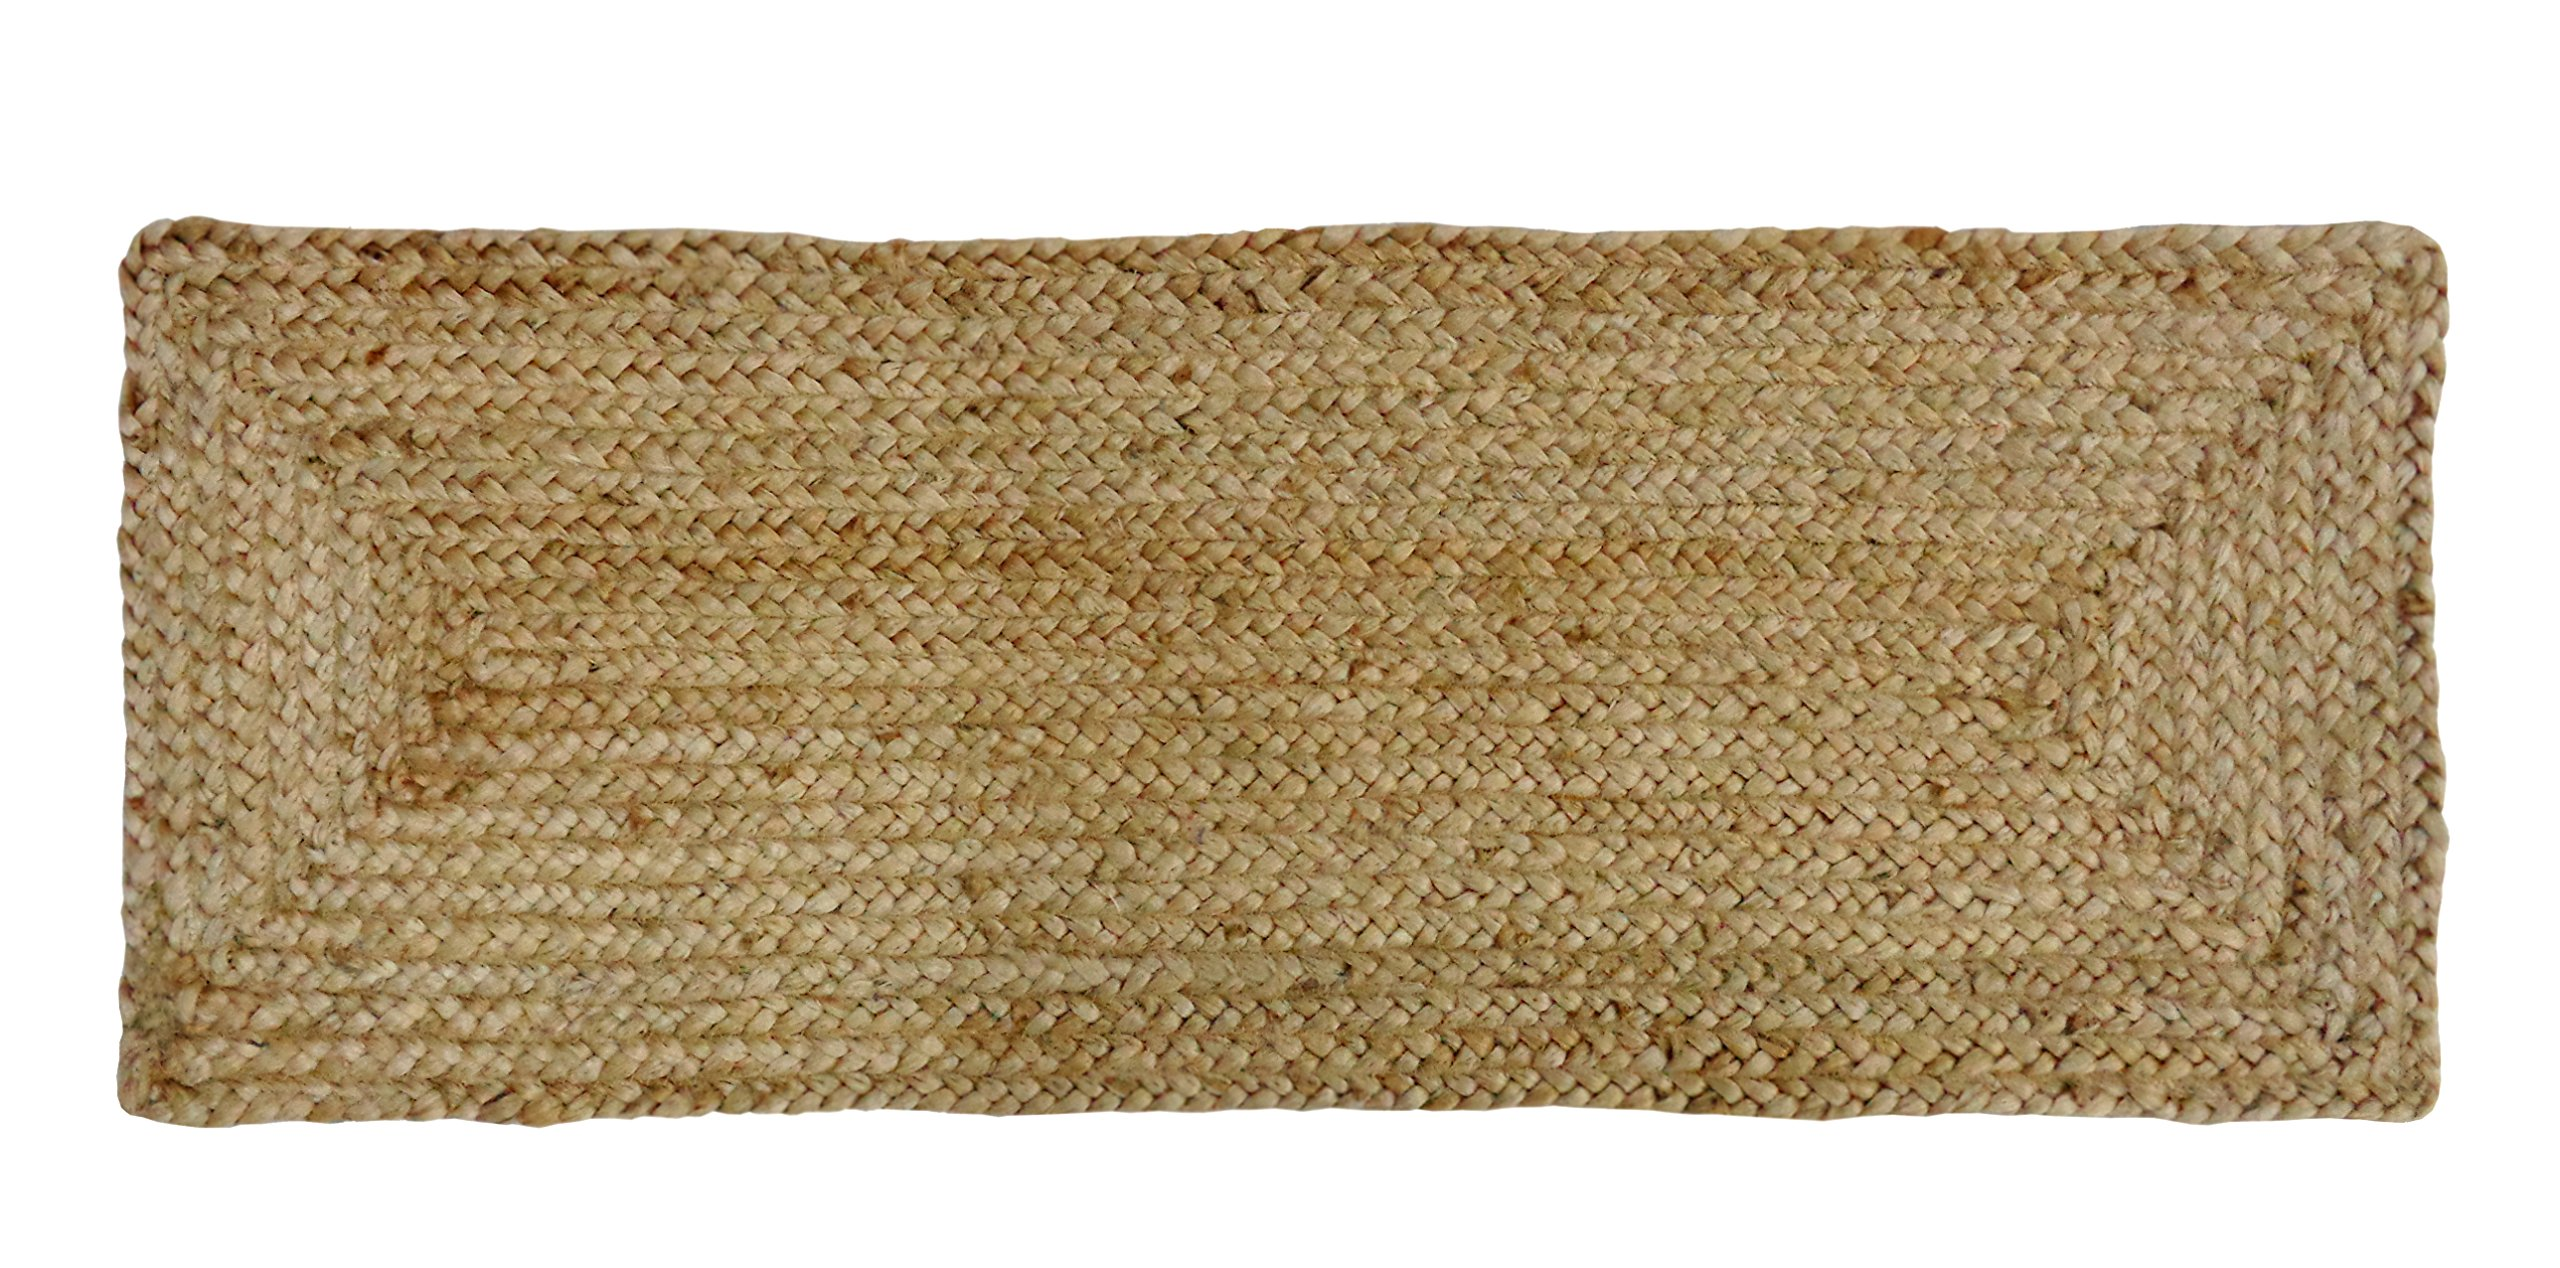 Cotton Craft - 100% Jute- Reversible Jute Braided Table Runner - Natural - 13 x 36 Inch - Hand Woven Rectangular Plain - Spot Clean Only. - CONTENTS: Package contains one Natural Color Rectangular Jute Braided Table Runner SIZE: Table Runner measures 13 inches wide x 36 inches long HIGH QUALITY: Hand woven from 100% Natural Jute Fibers, Reversible for longer usage - table-runners, kitchen-dining-room-table-linens, kitchen-dining-room - 91sMSCpsH8L -